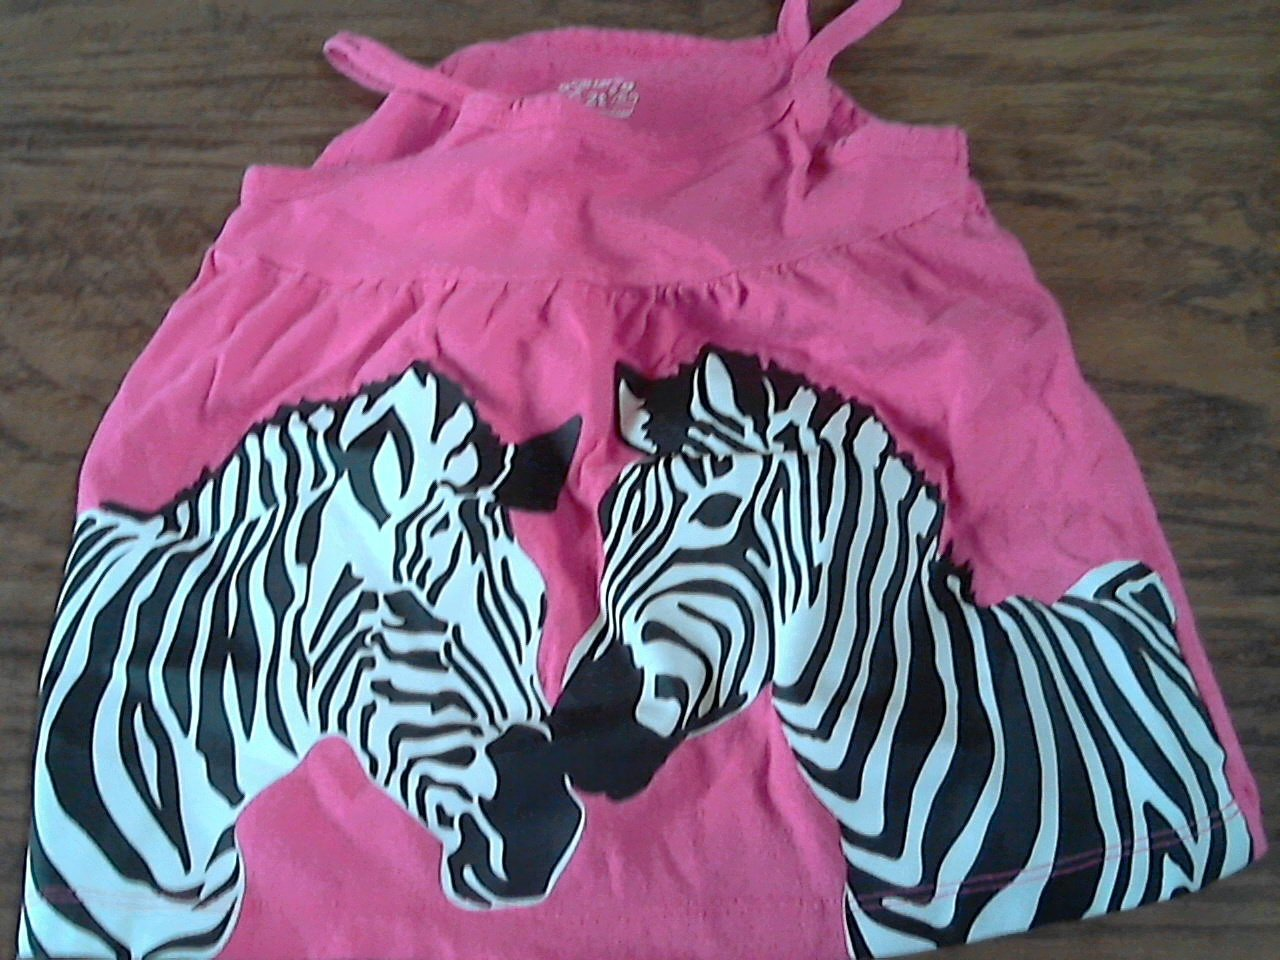 Carter's todder girl's hot pink string top 2T